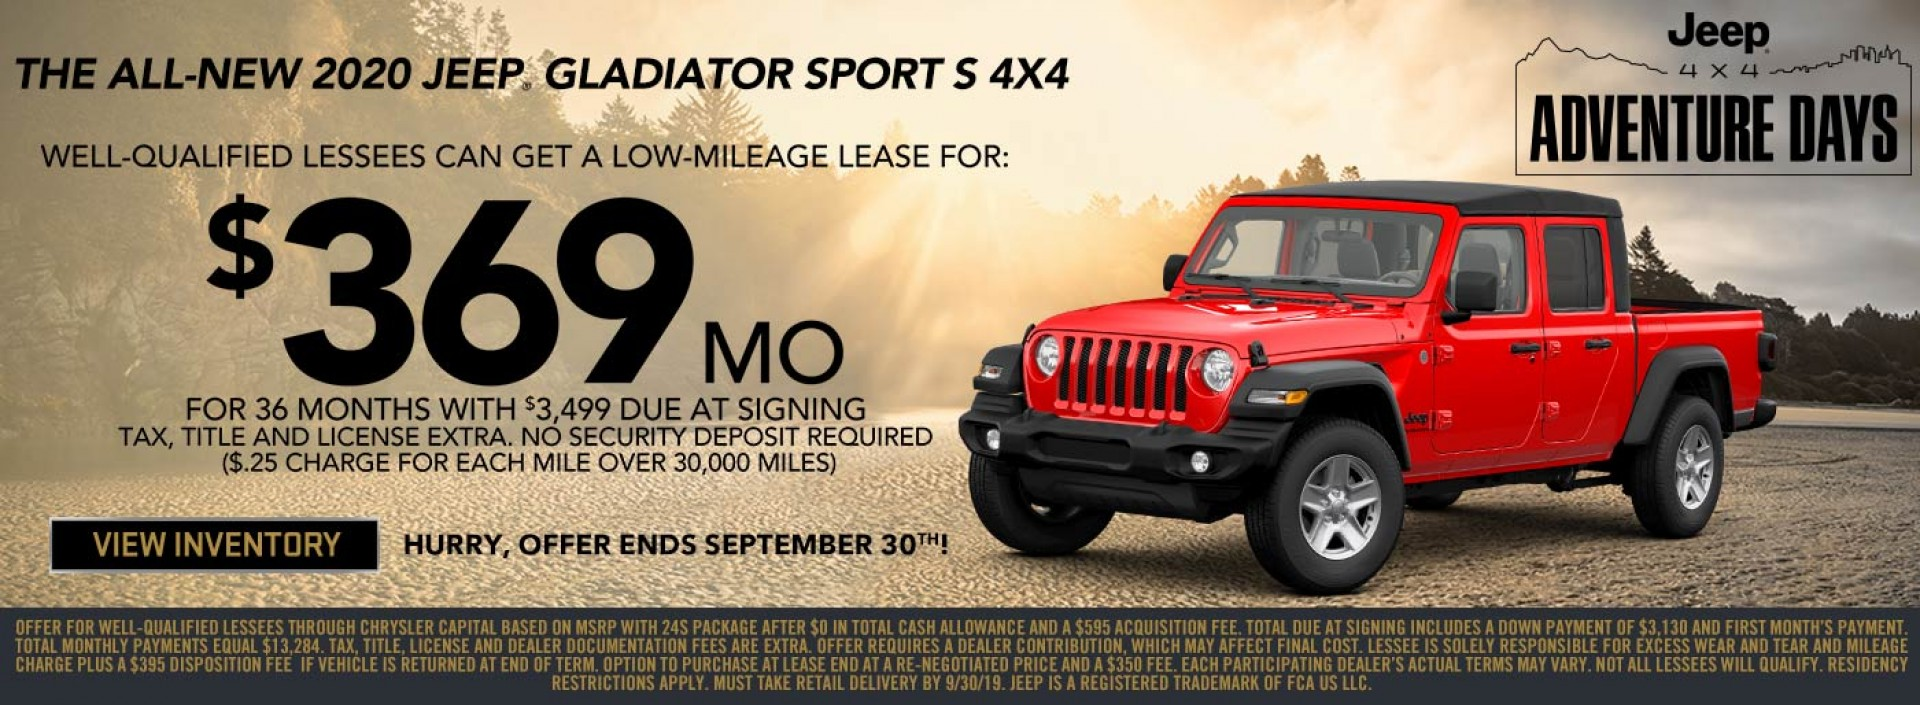 MWBC-2020Jeep-Gladiator-SEPT-Lease